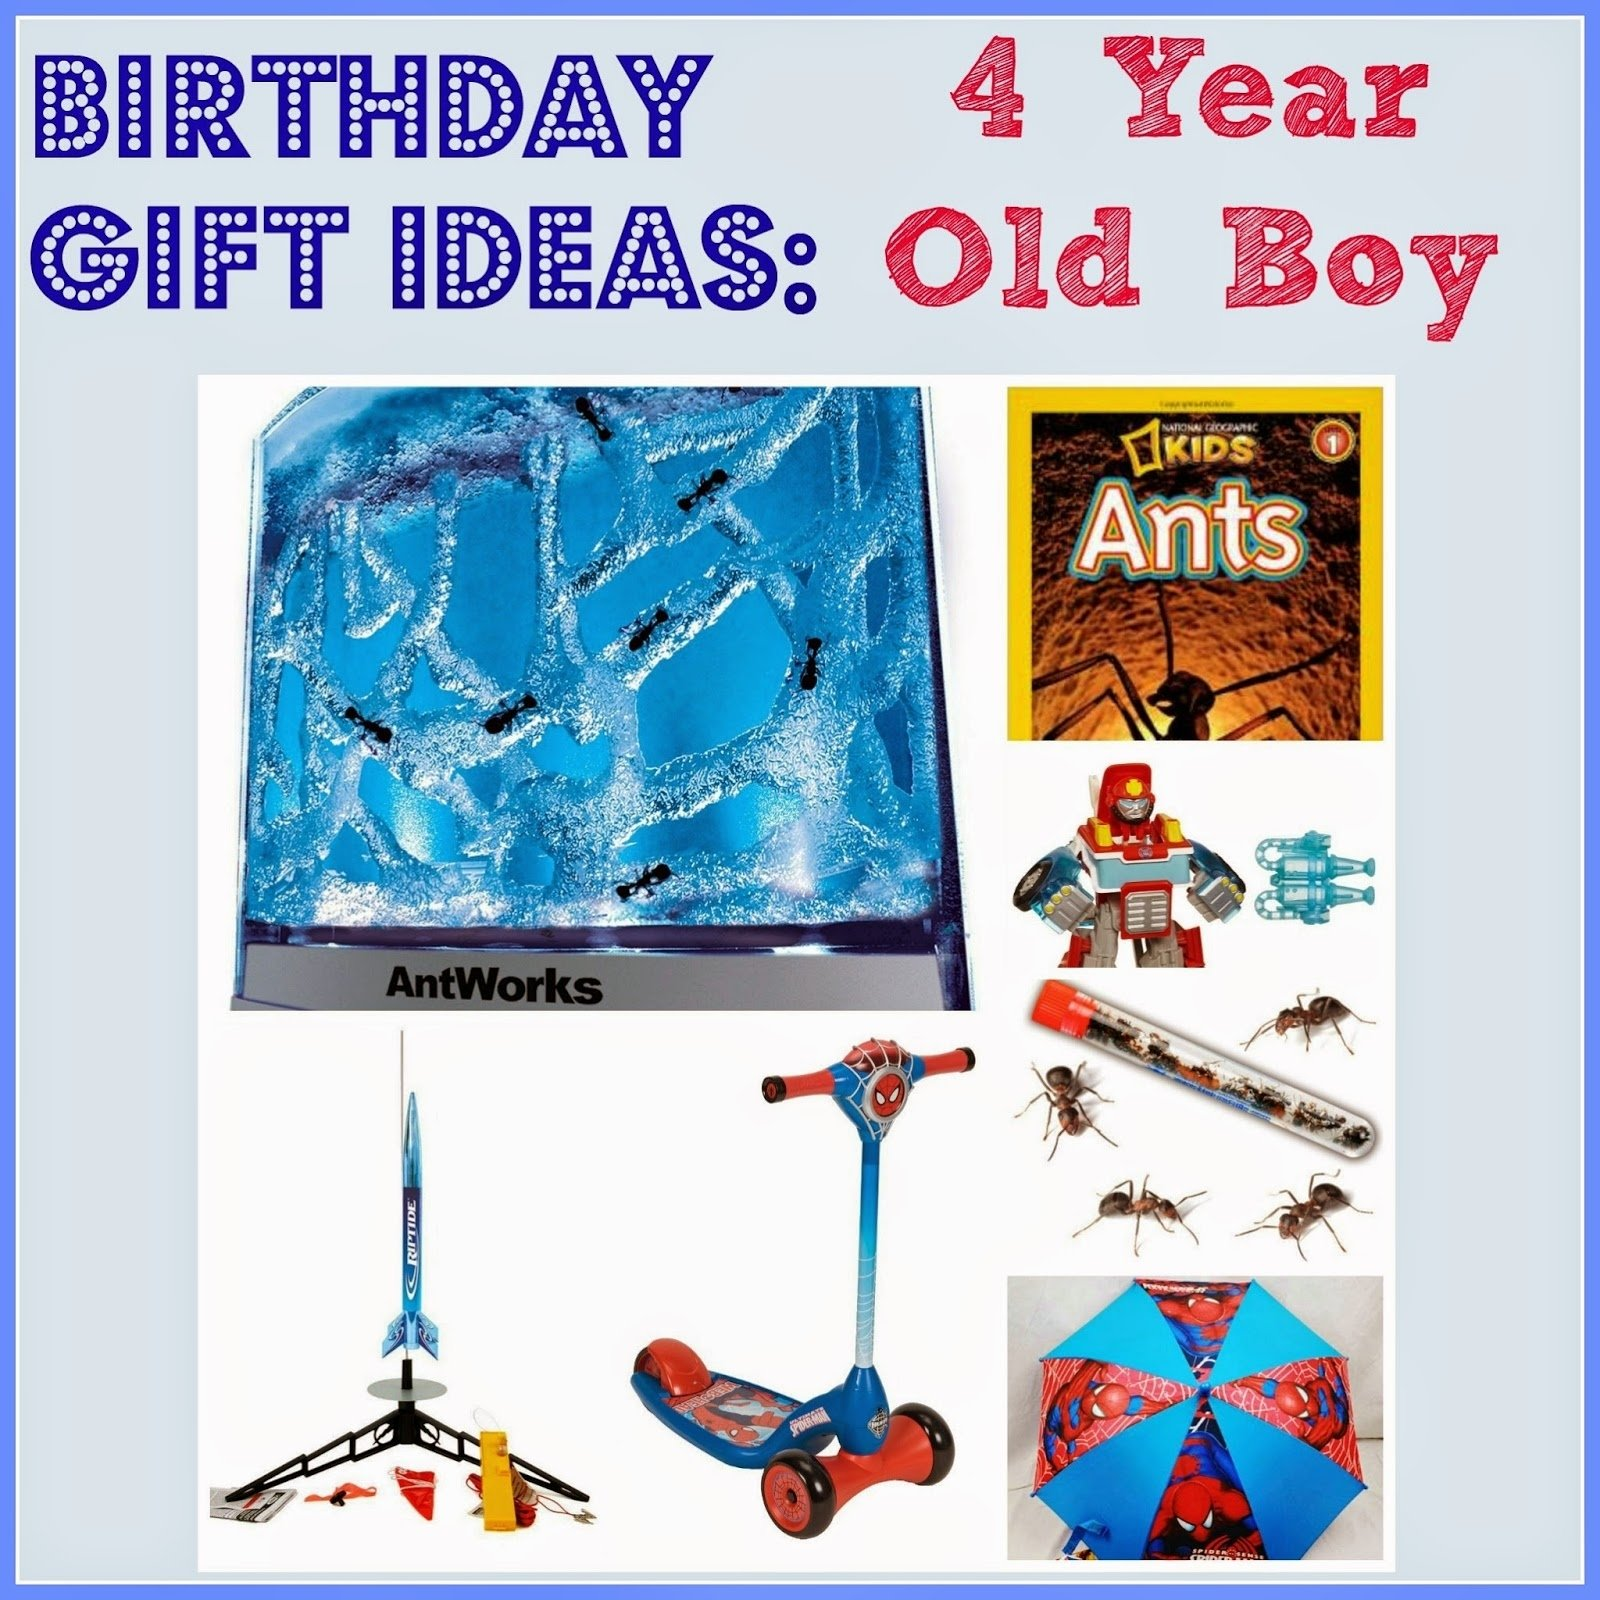 10 Unique Birthday Gift Ideas For 4 Year Old Boy